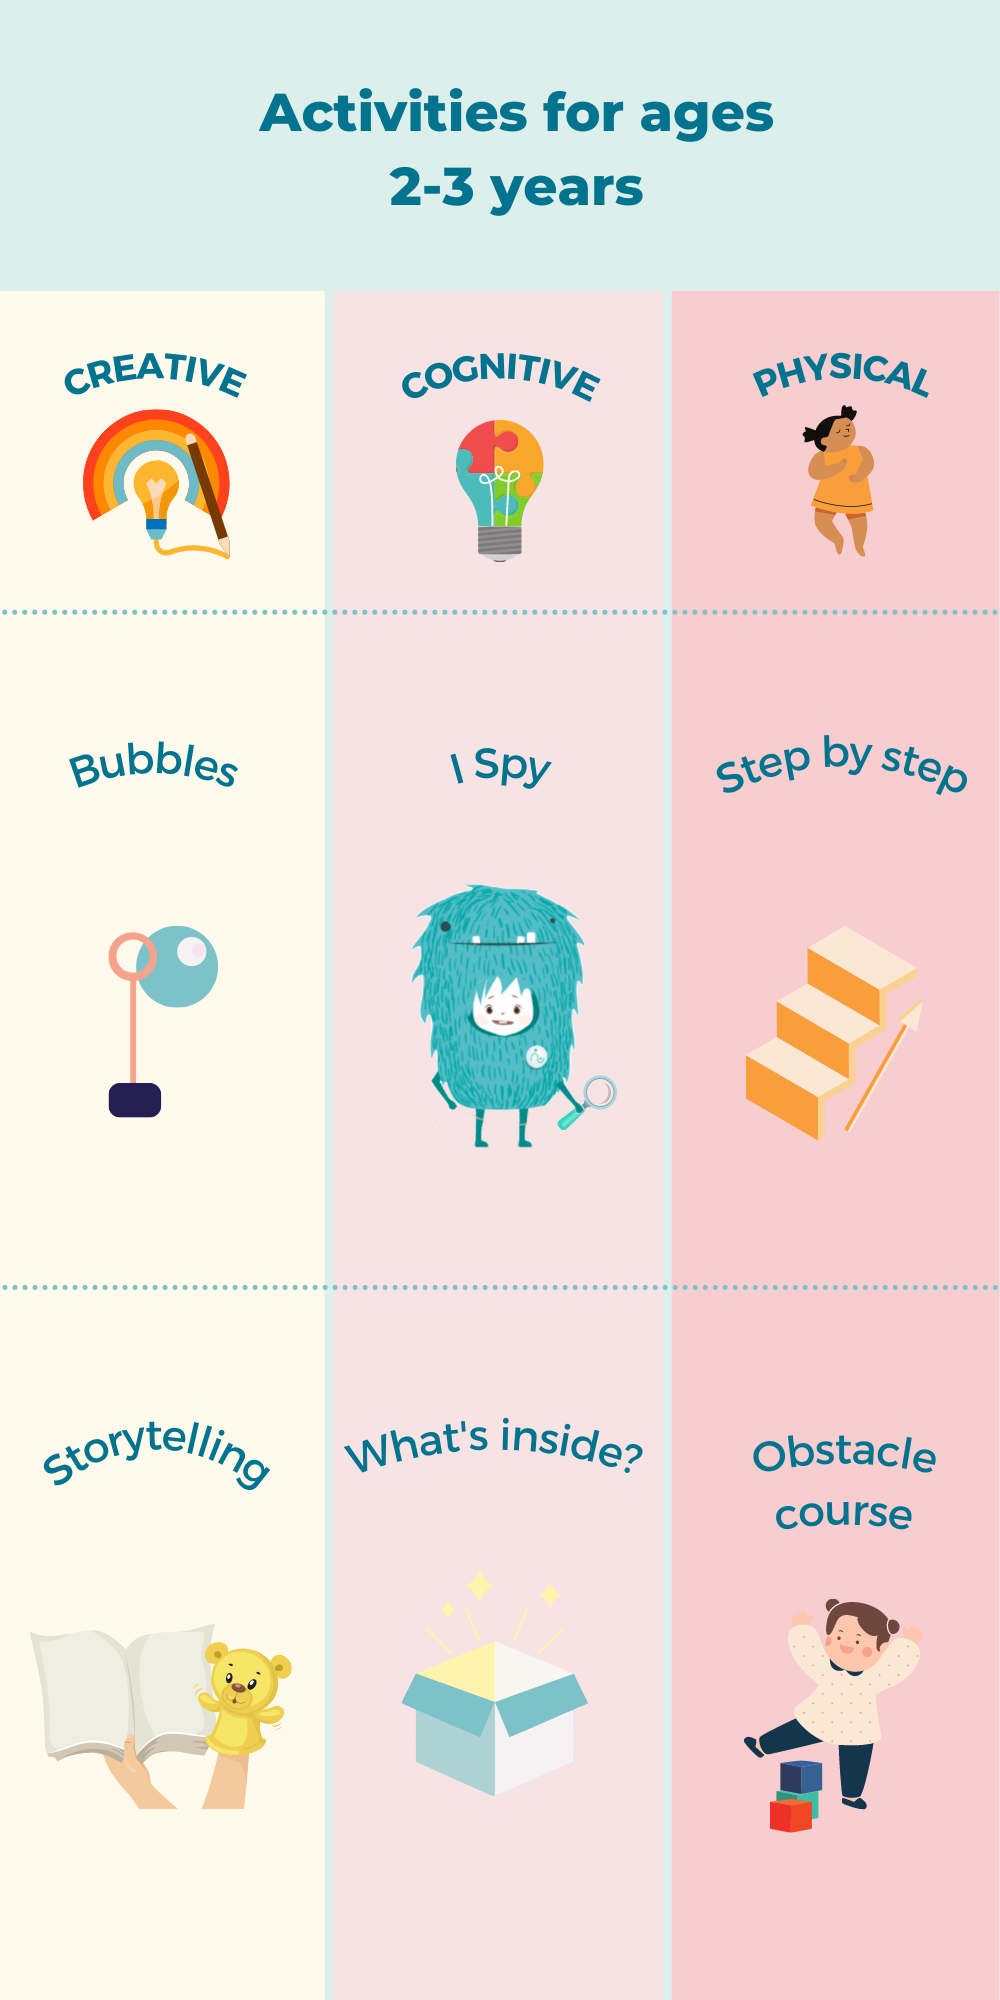 Activities for ages 2-3 years